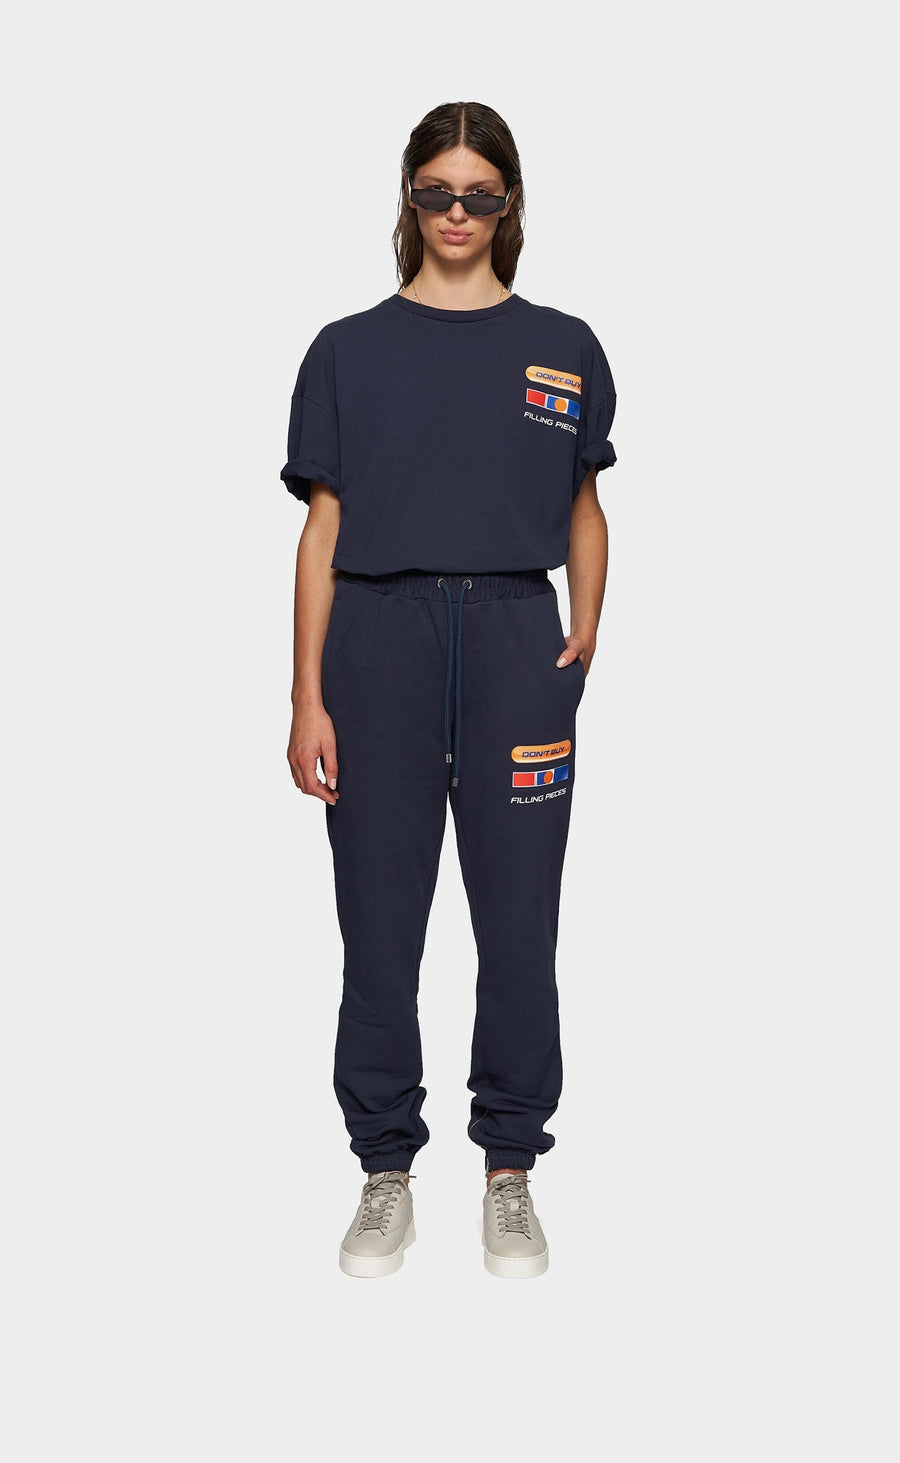 SWEAT PANTS DON'T BUY NAVY - men